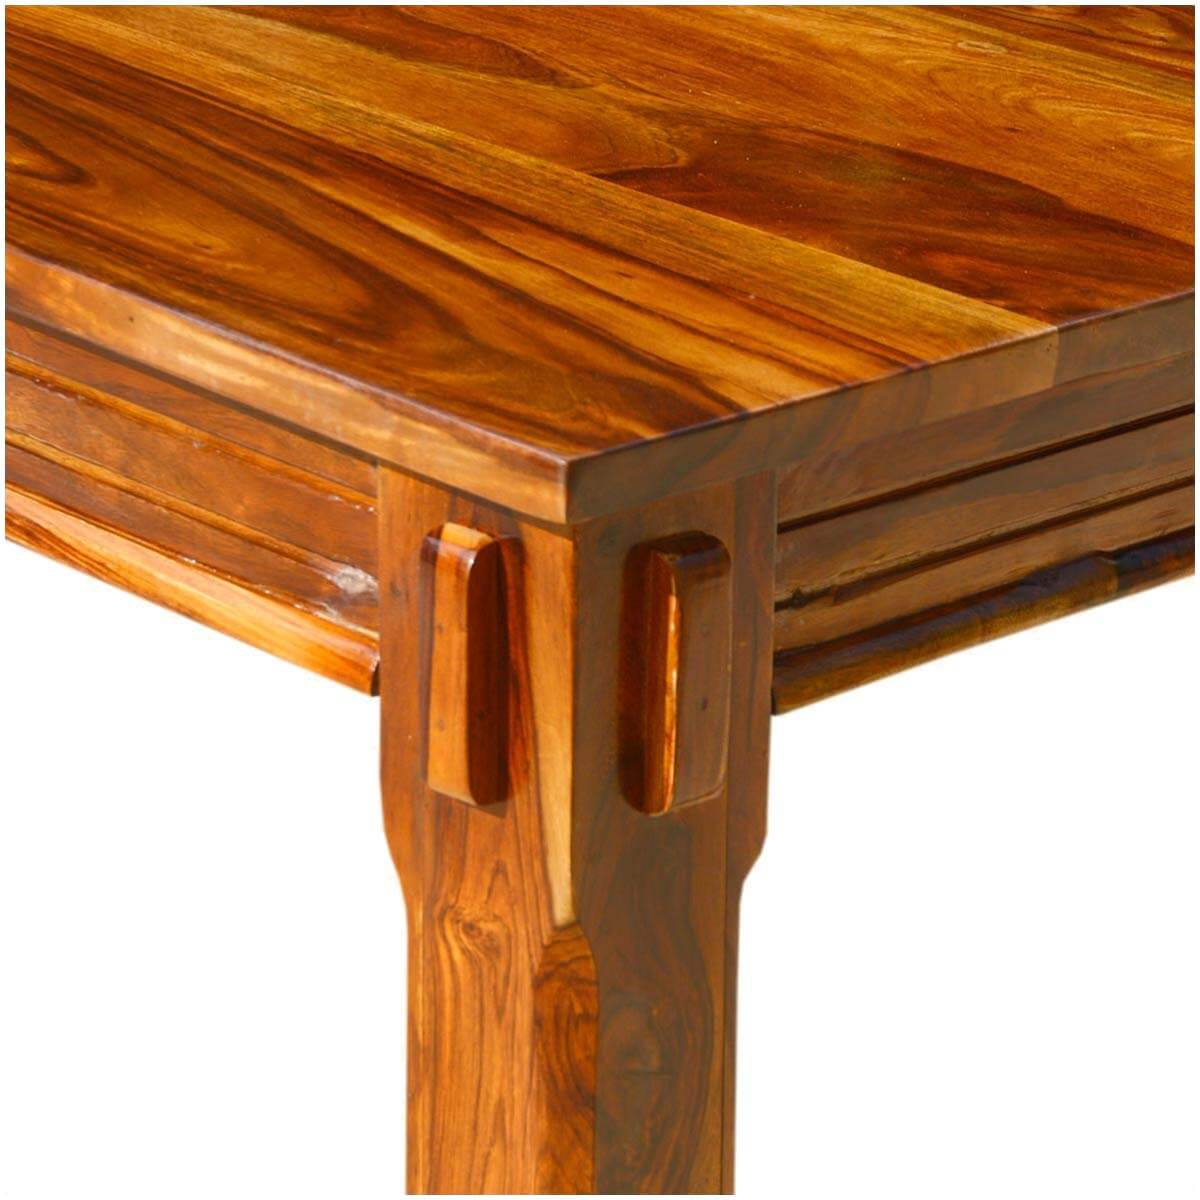 Solid Wood Dining Table Chairs: Solid Wood Rustic Square Dining Table Chairs Set